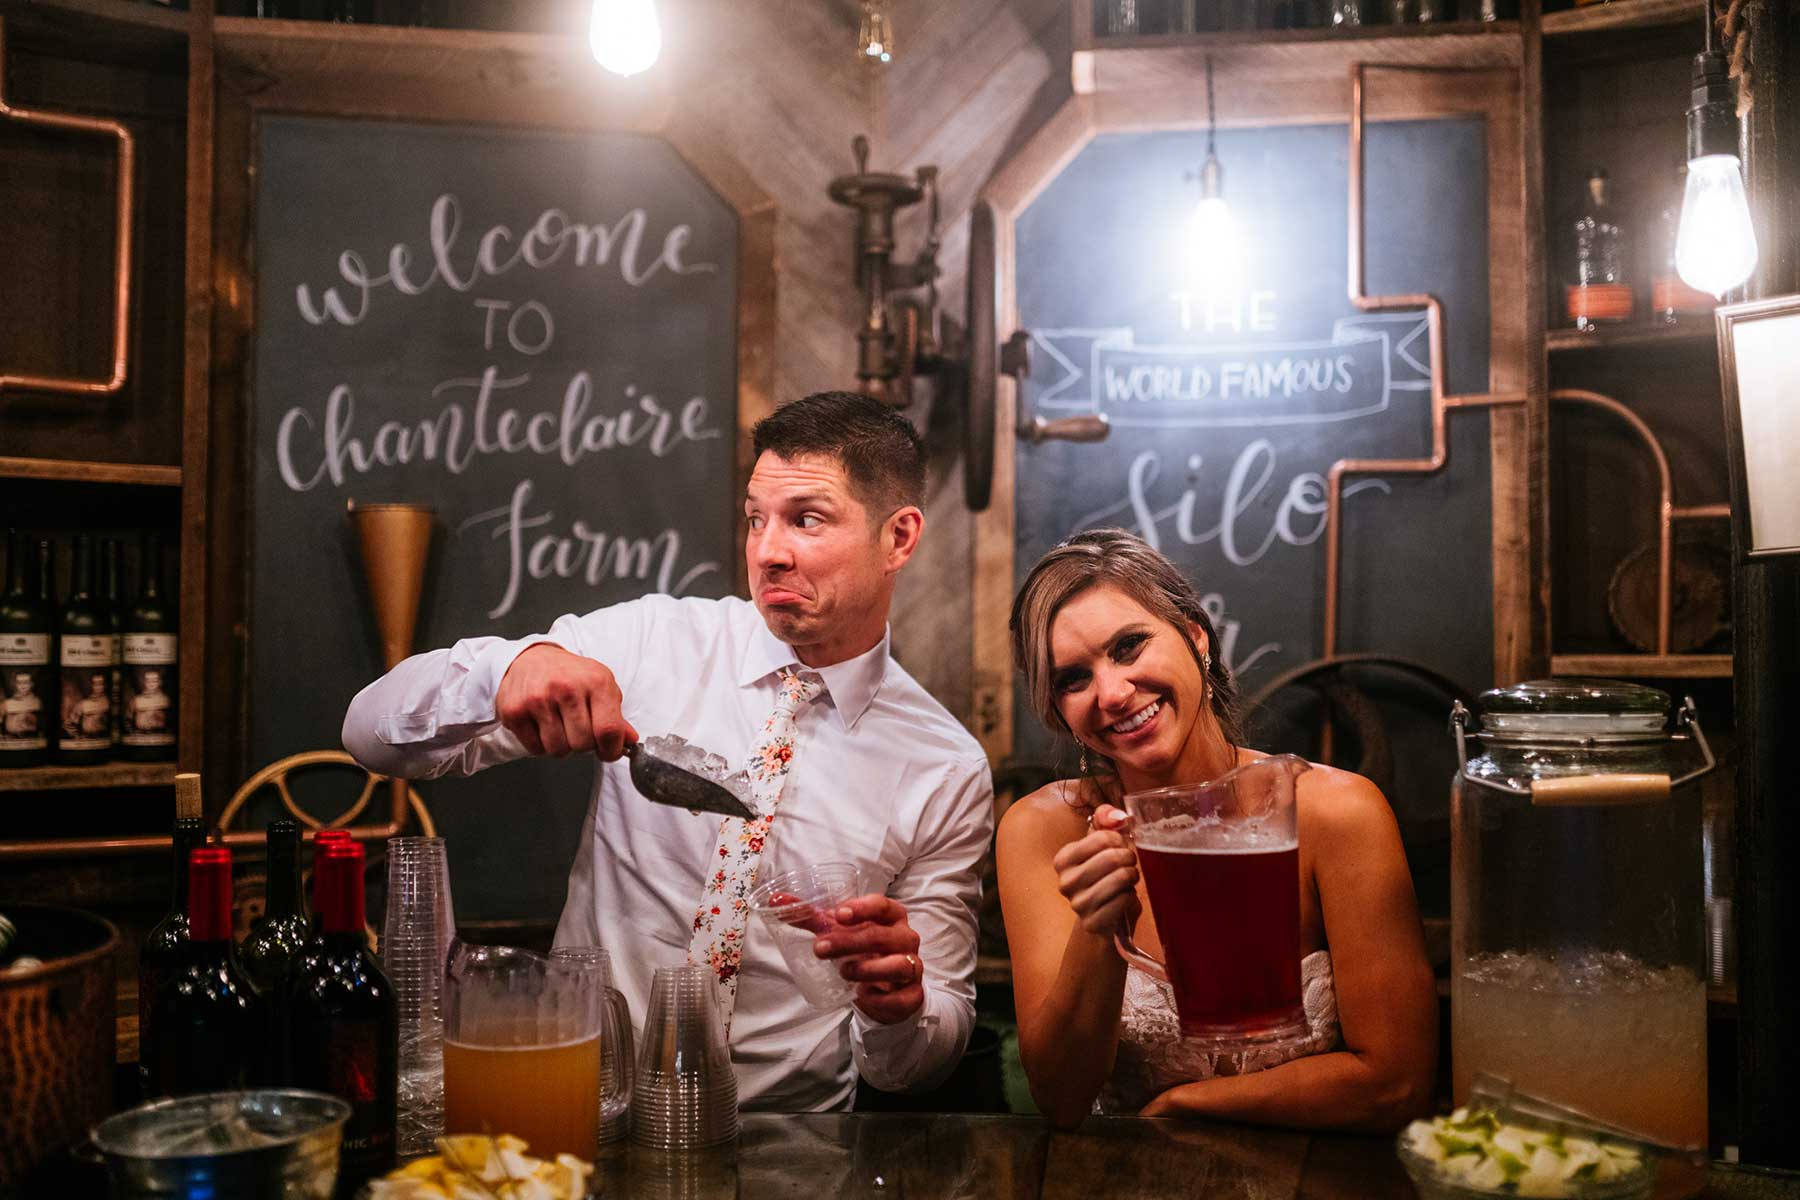 chanteclaire farm silo bar wedding portrait